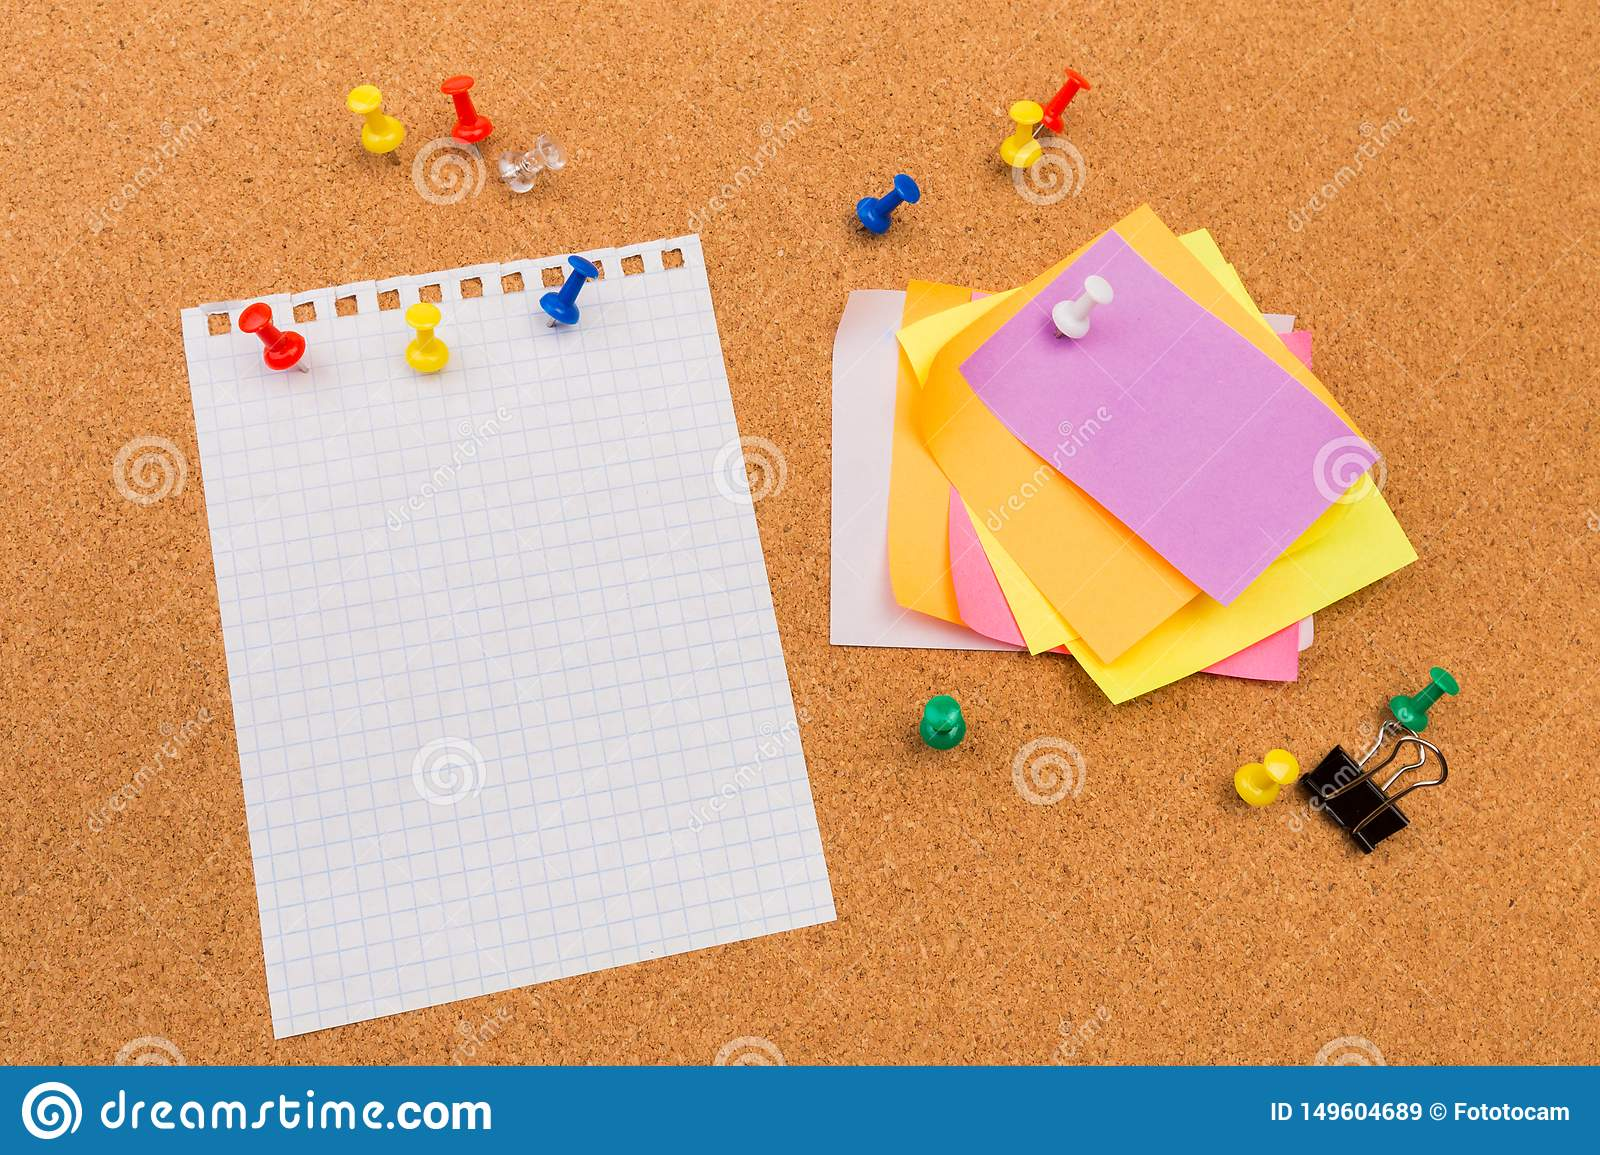 Cork board with pinned colored blank notes - Image